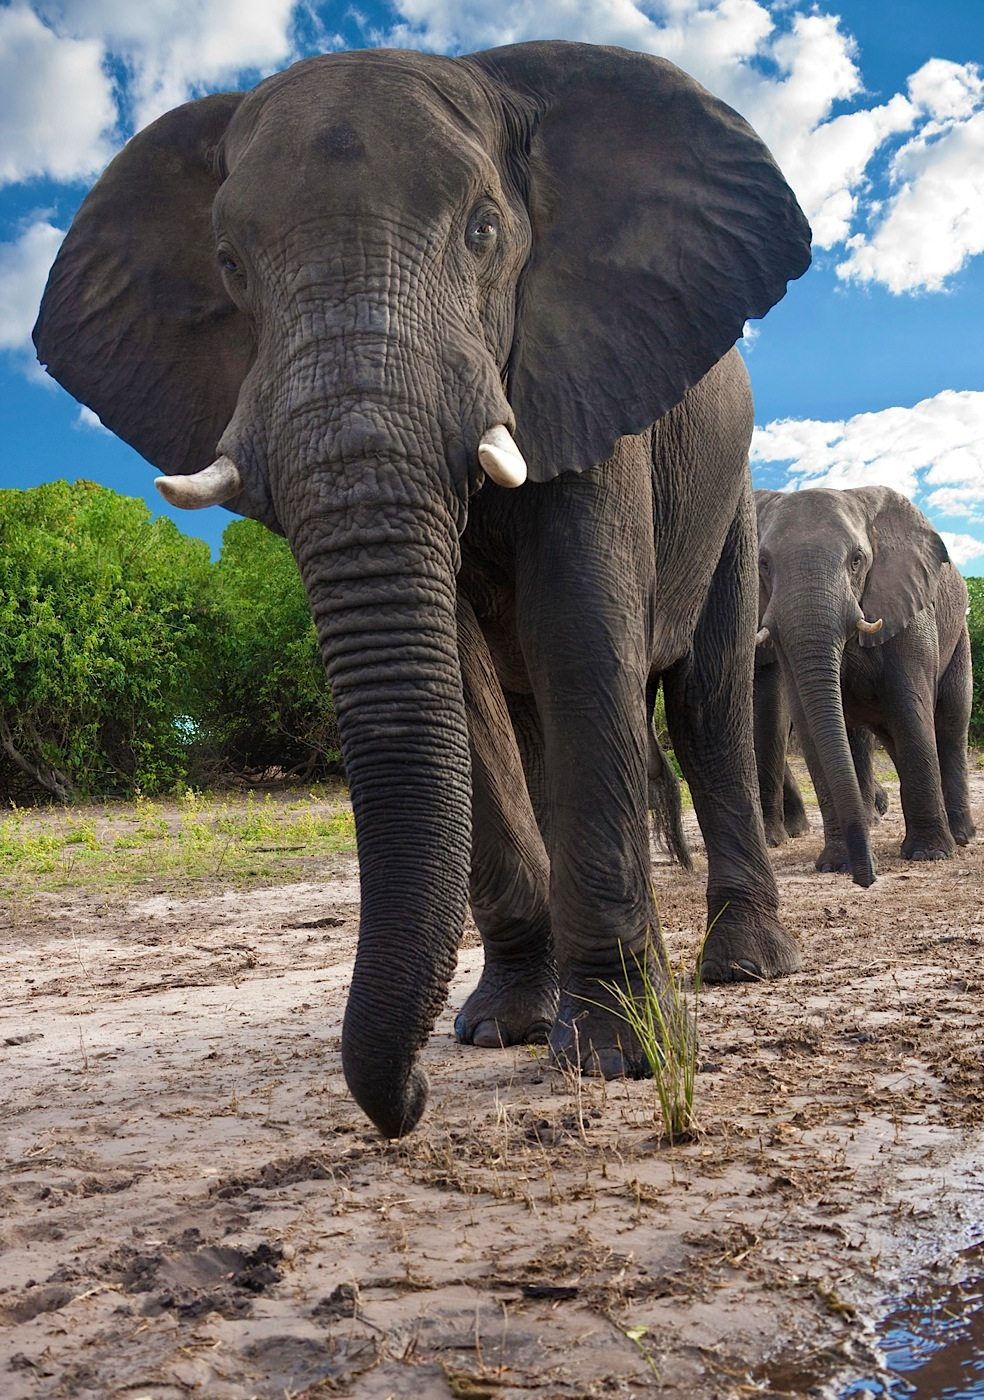 Low view of a group of African Elephants (Loxodonta africana) near the Chobe River in Chobe National Park in Botswana